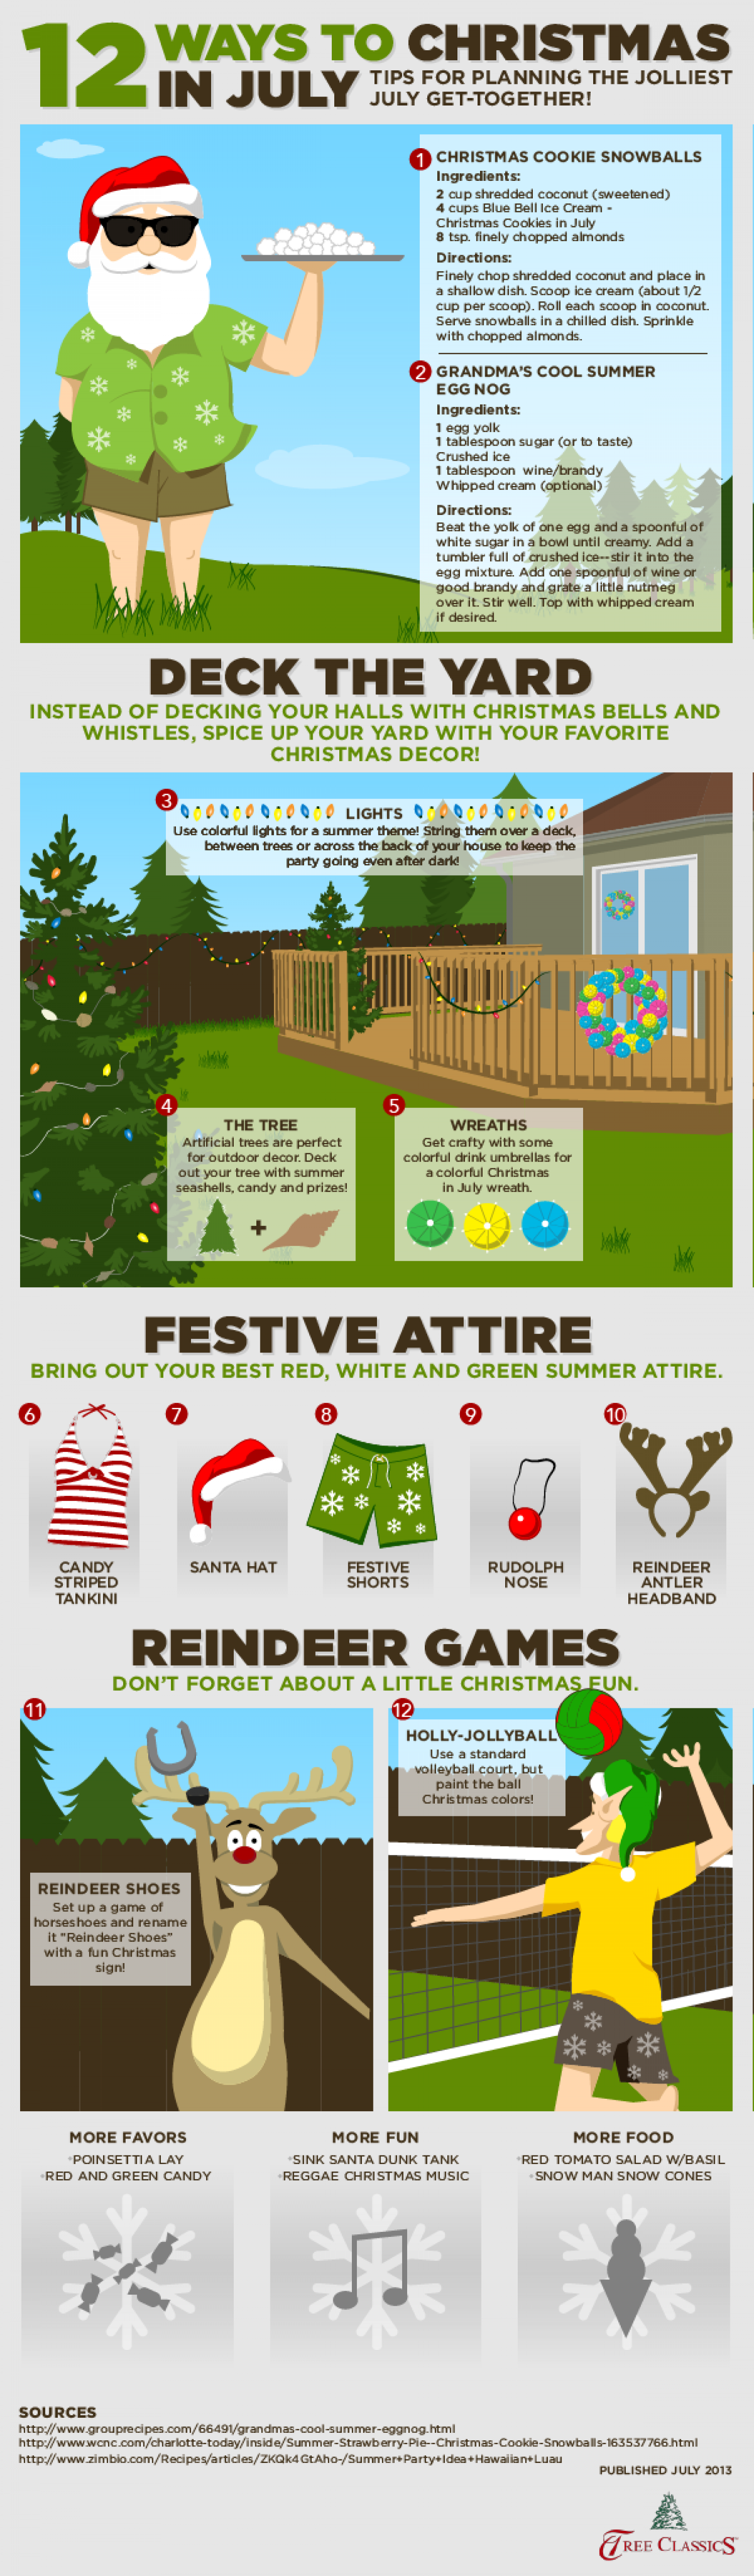 12 Ways to Christmas in July With Artificial Christmas Trees  Infographic